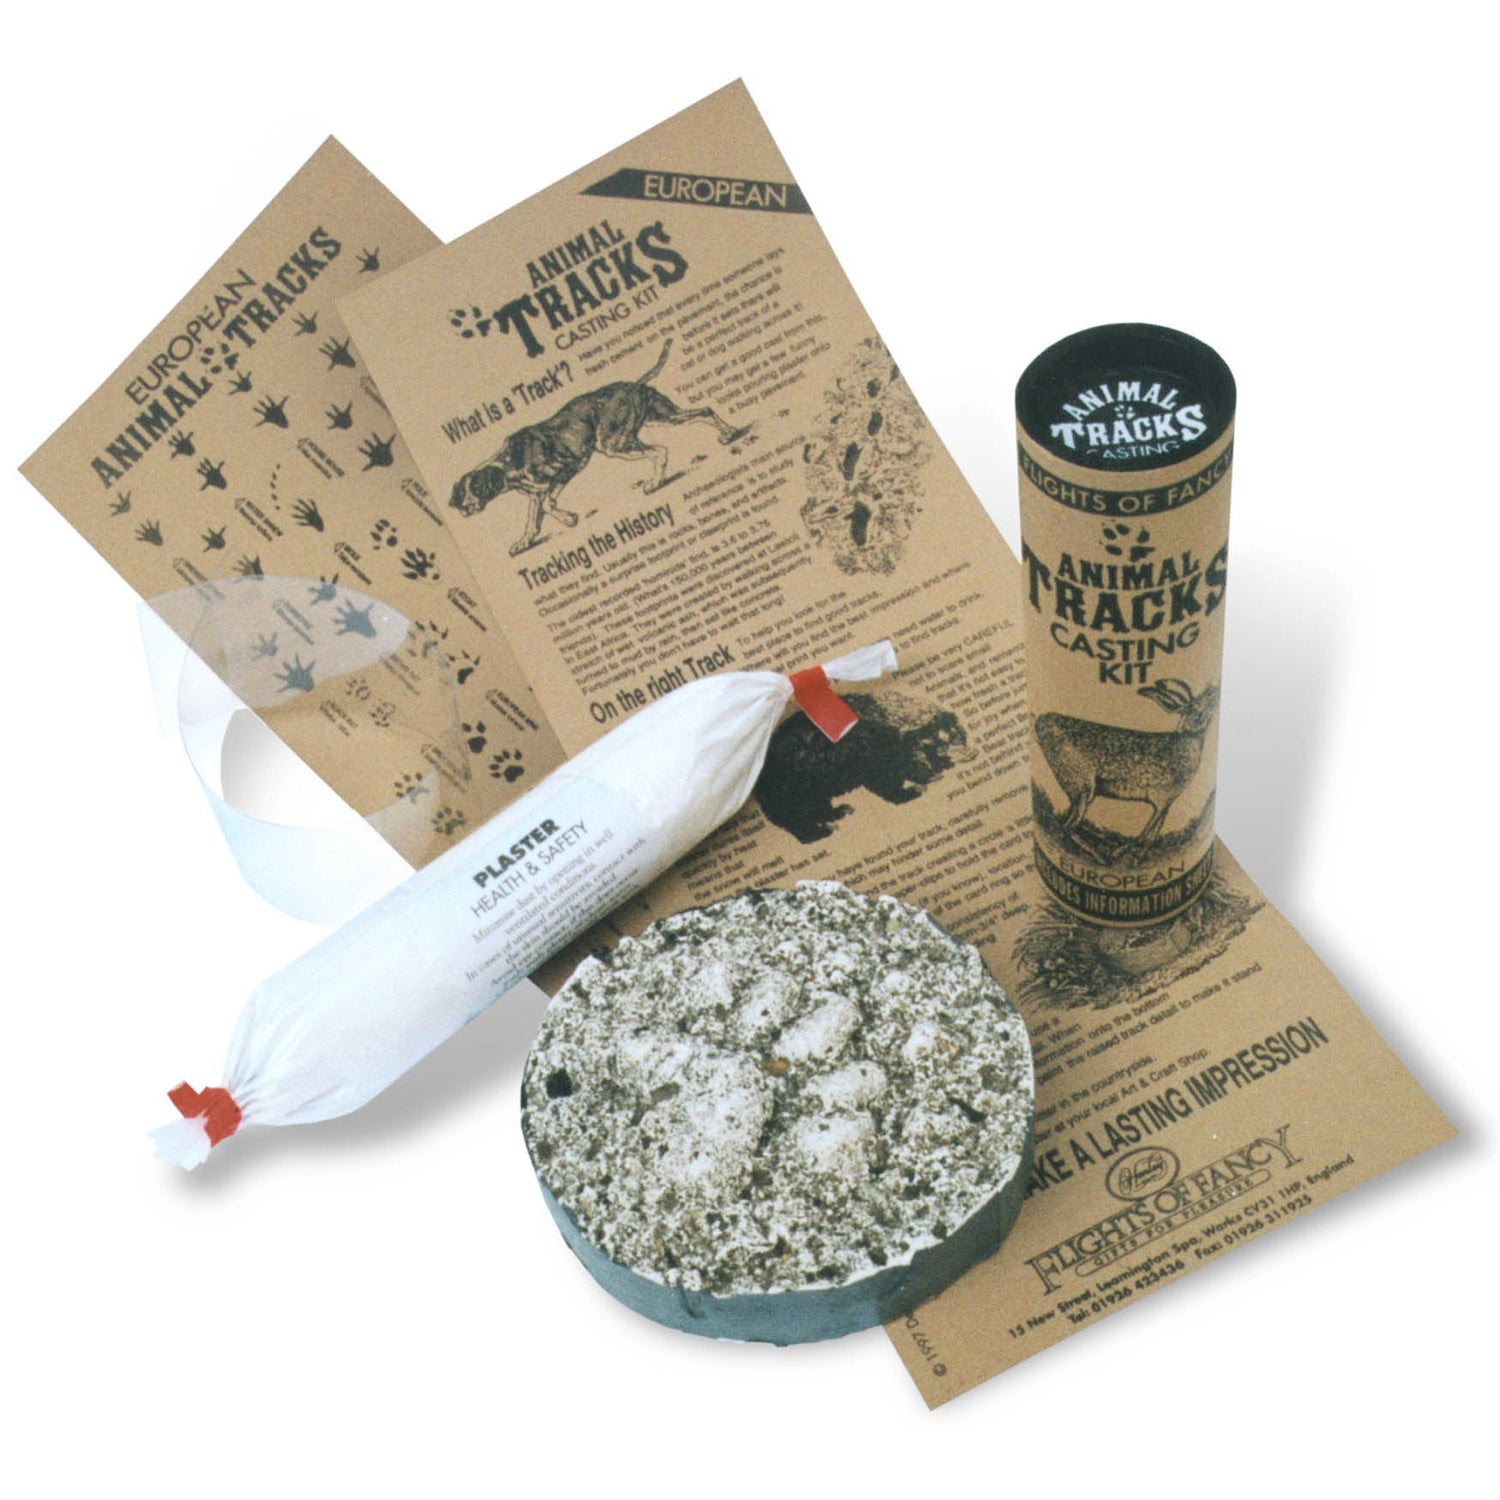 Animal Tracks Casting Kit Out Of Tube Contents